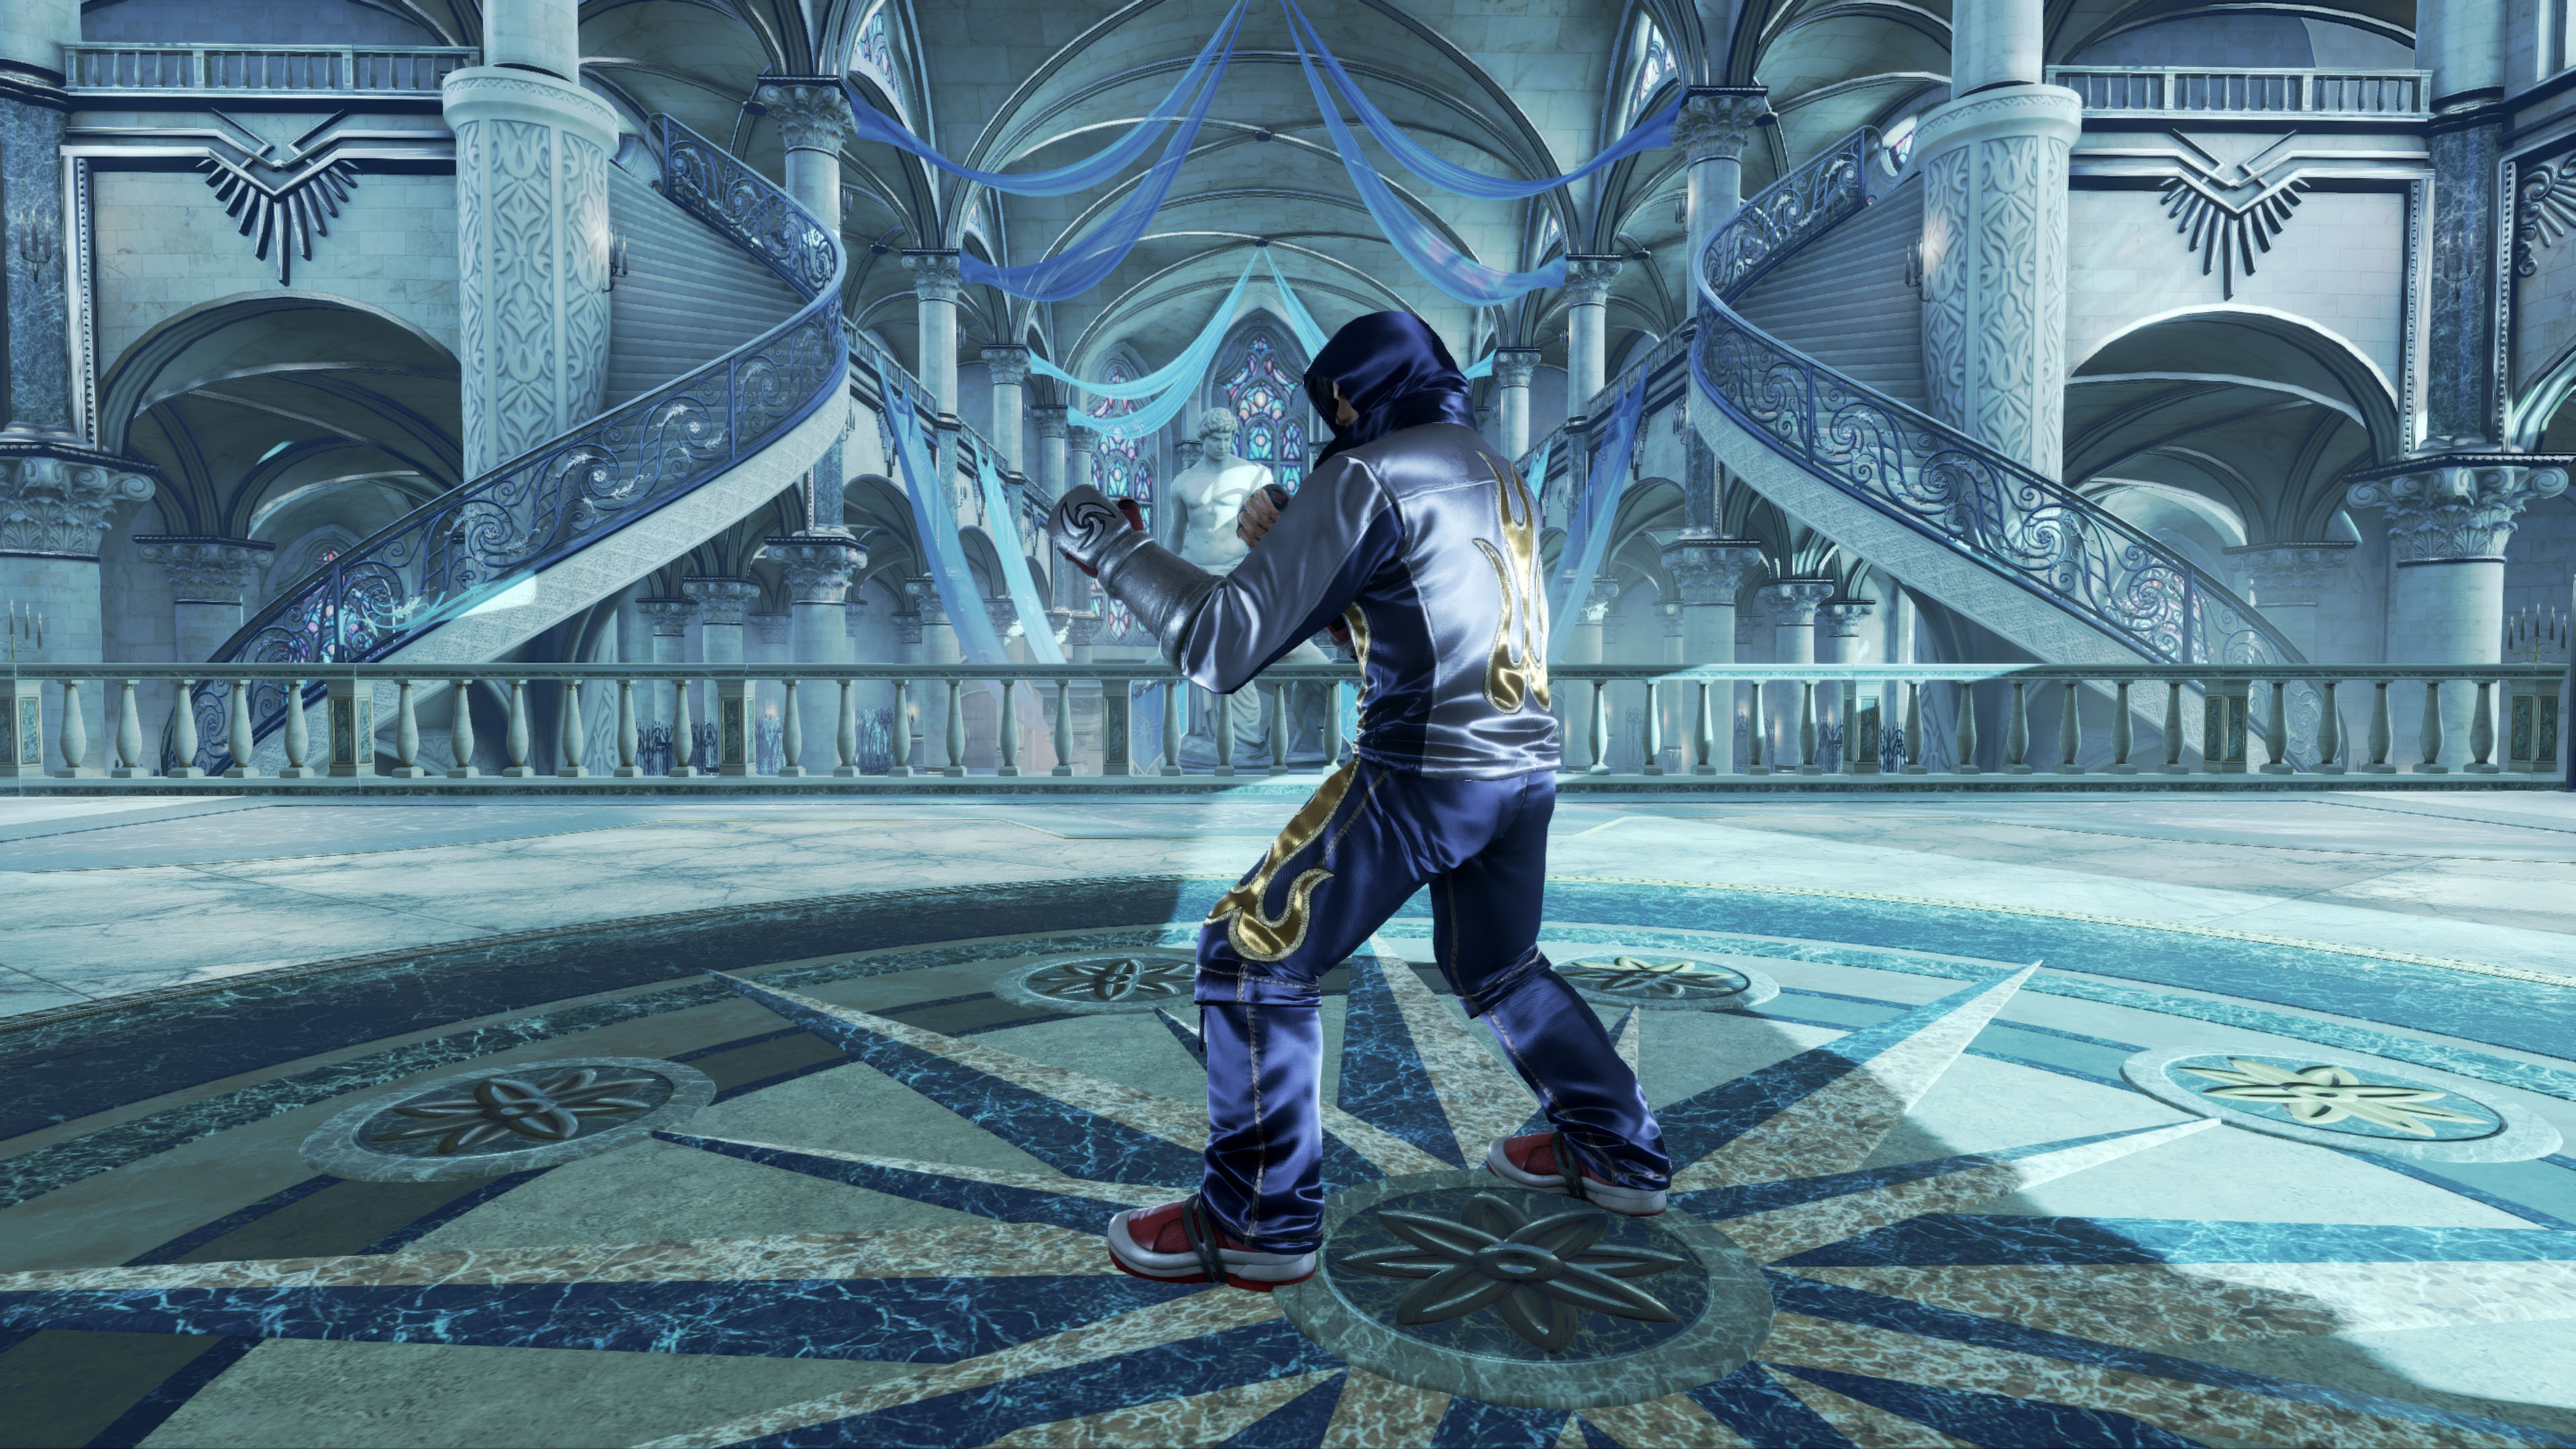 Tekken 7 Pc Jin S Tekken 4 Costume Mod Now Available News